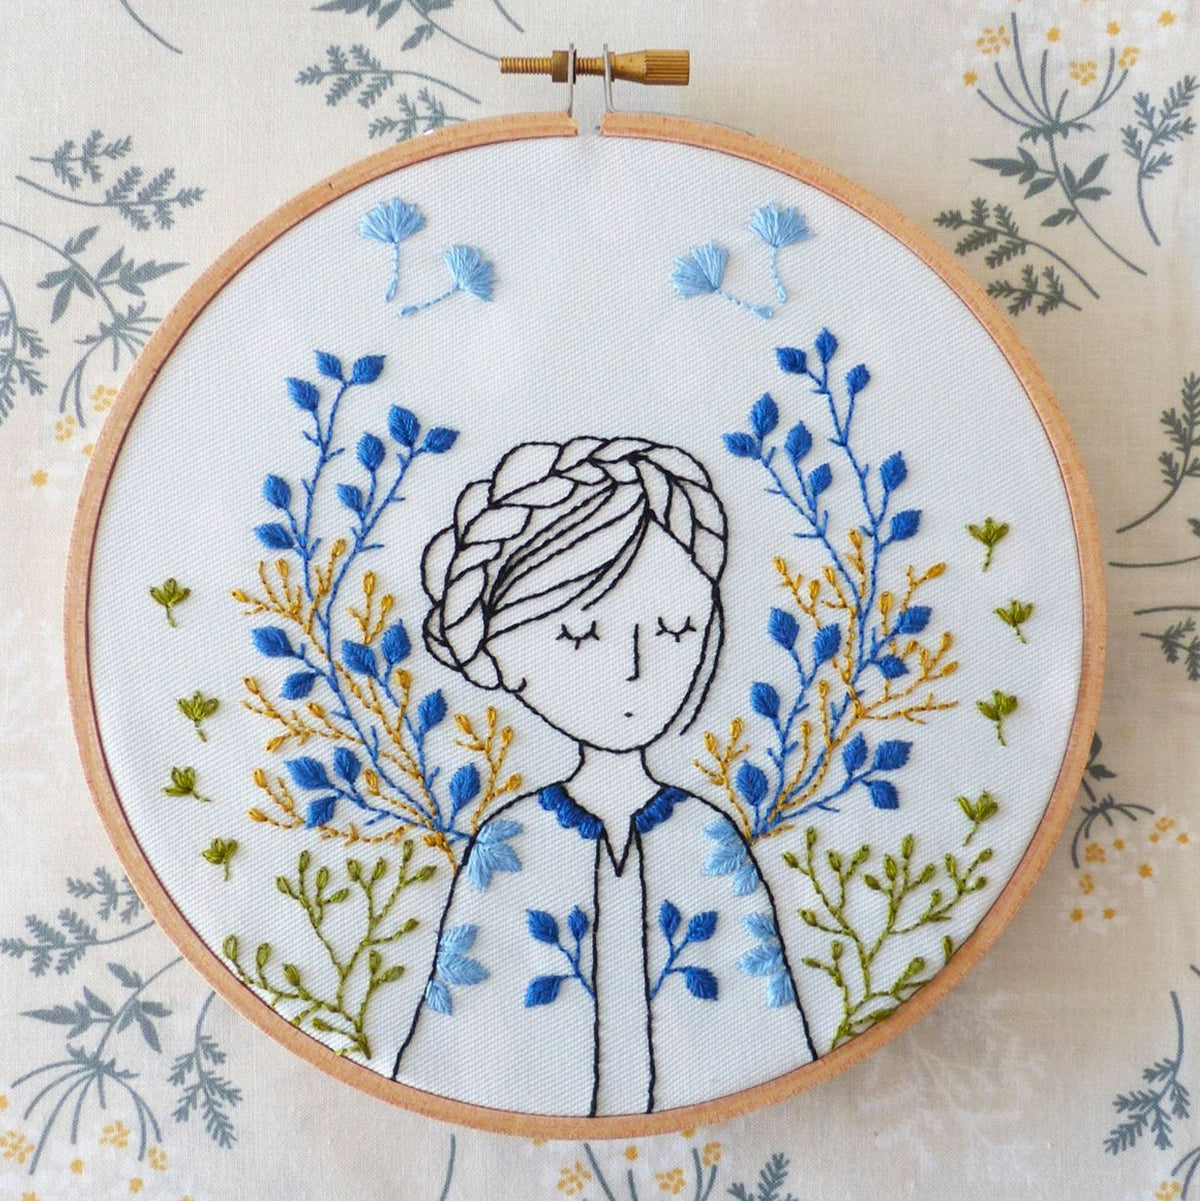 Dreamy Lady Hand Embroidery Kit